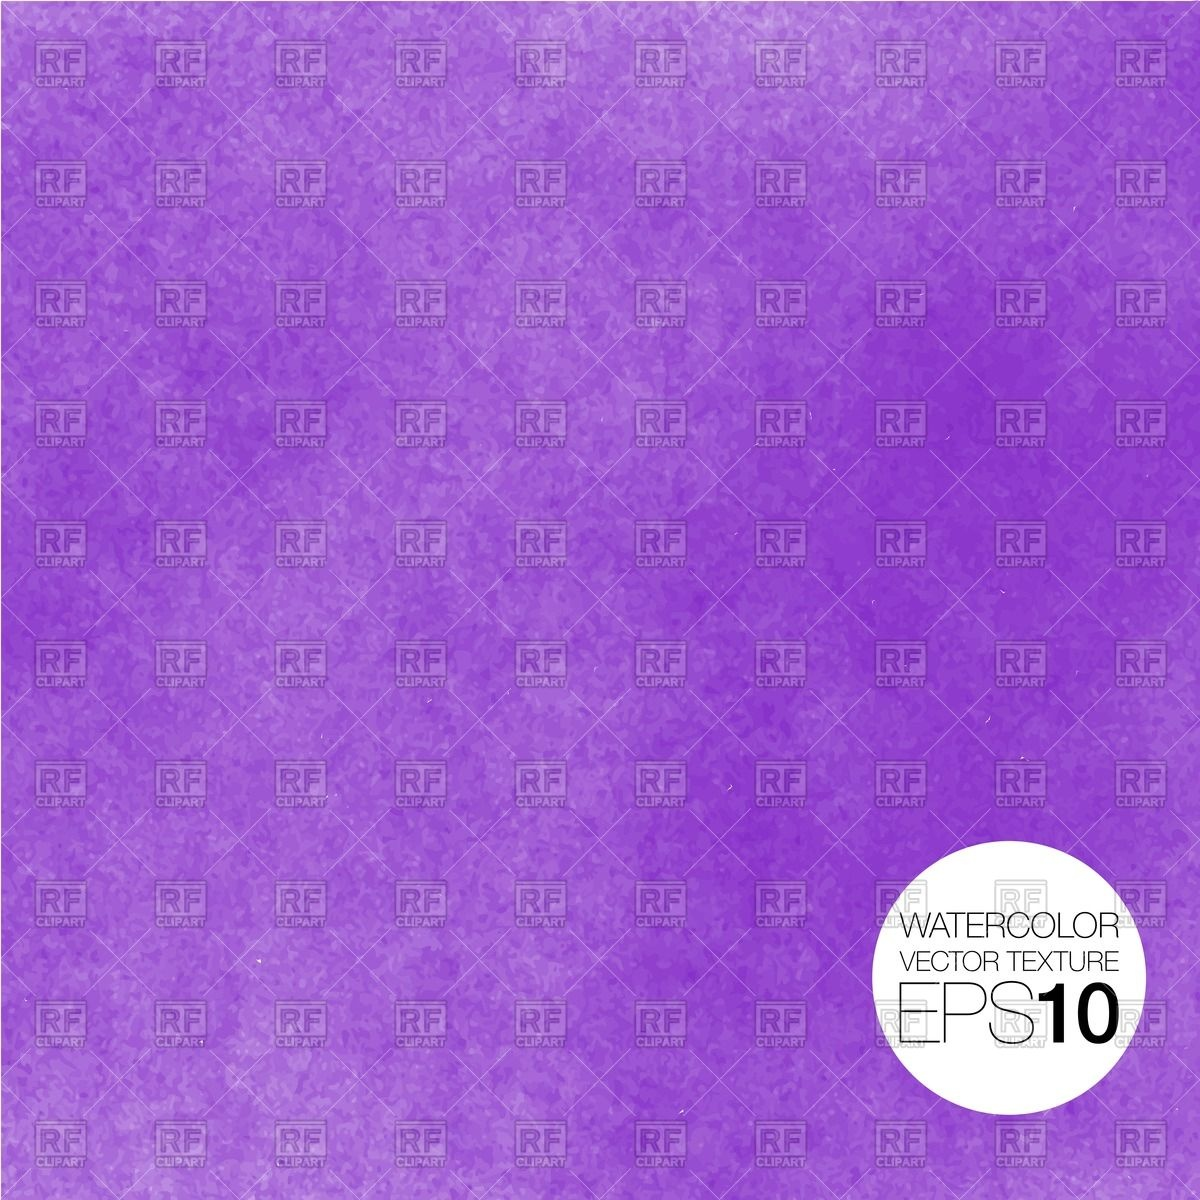 Watercolor violet textured background Vector Image #55956.